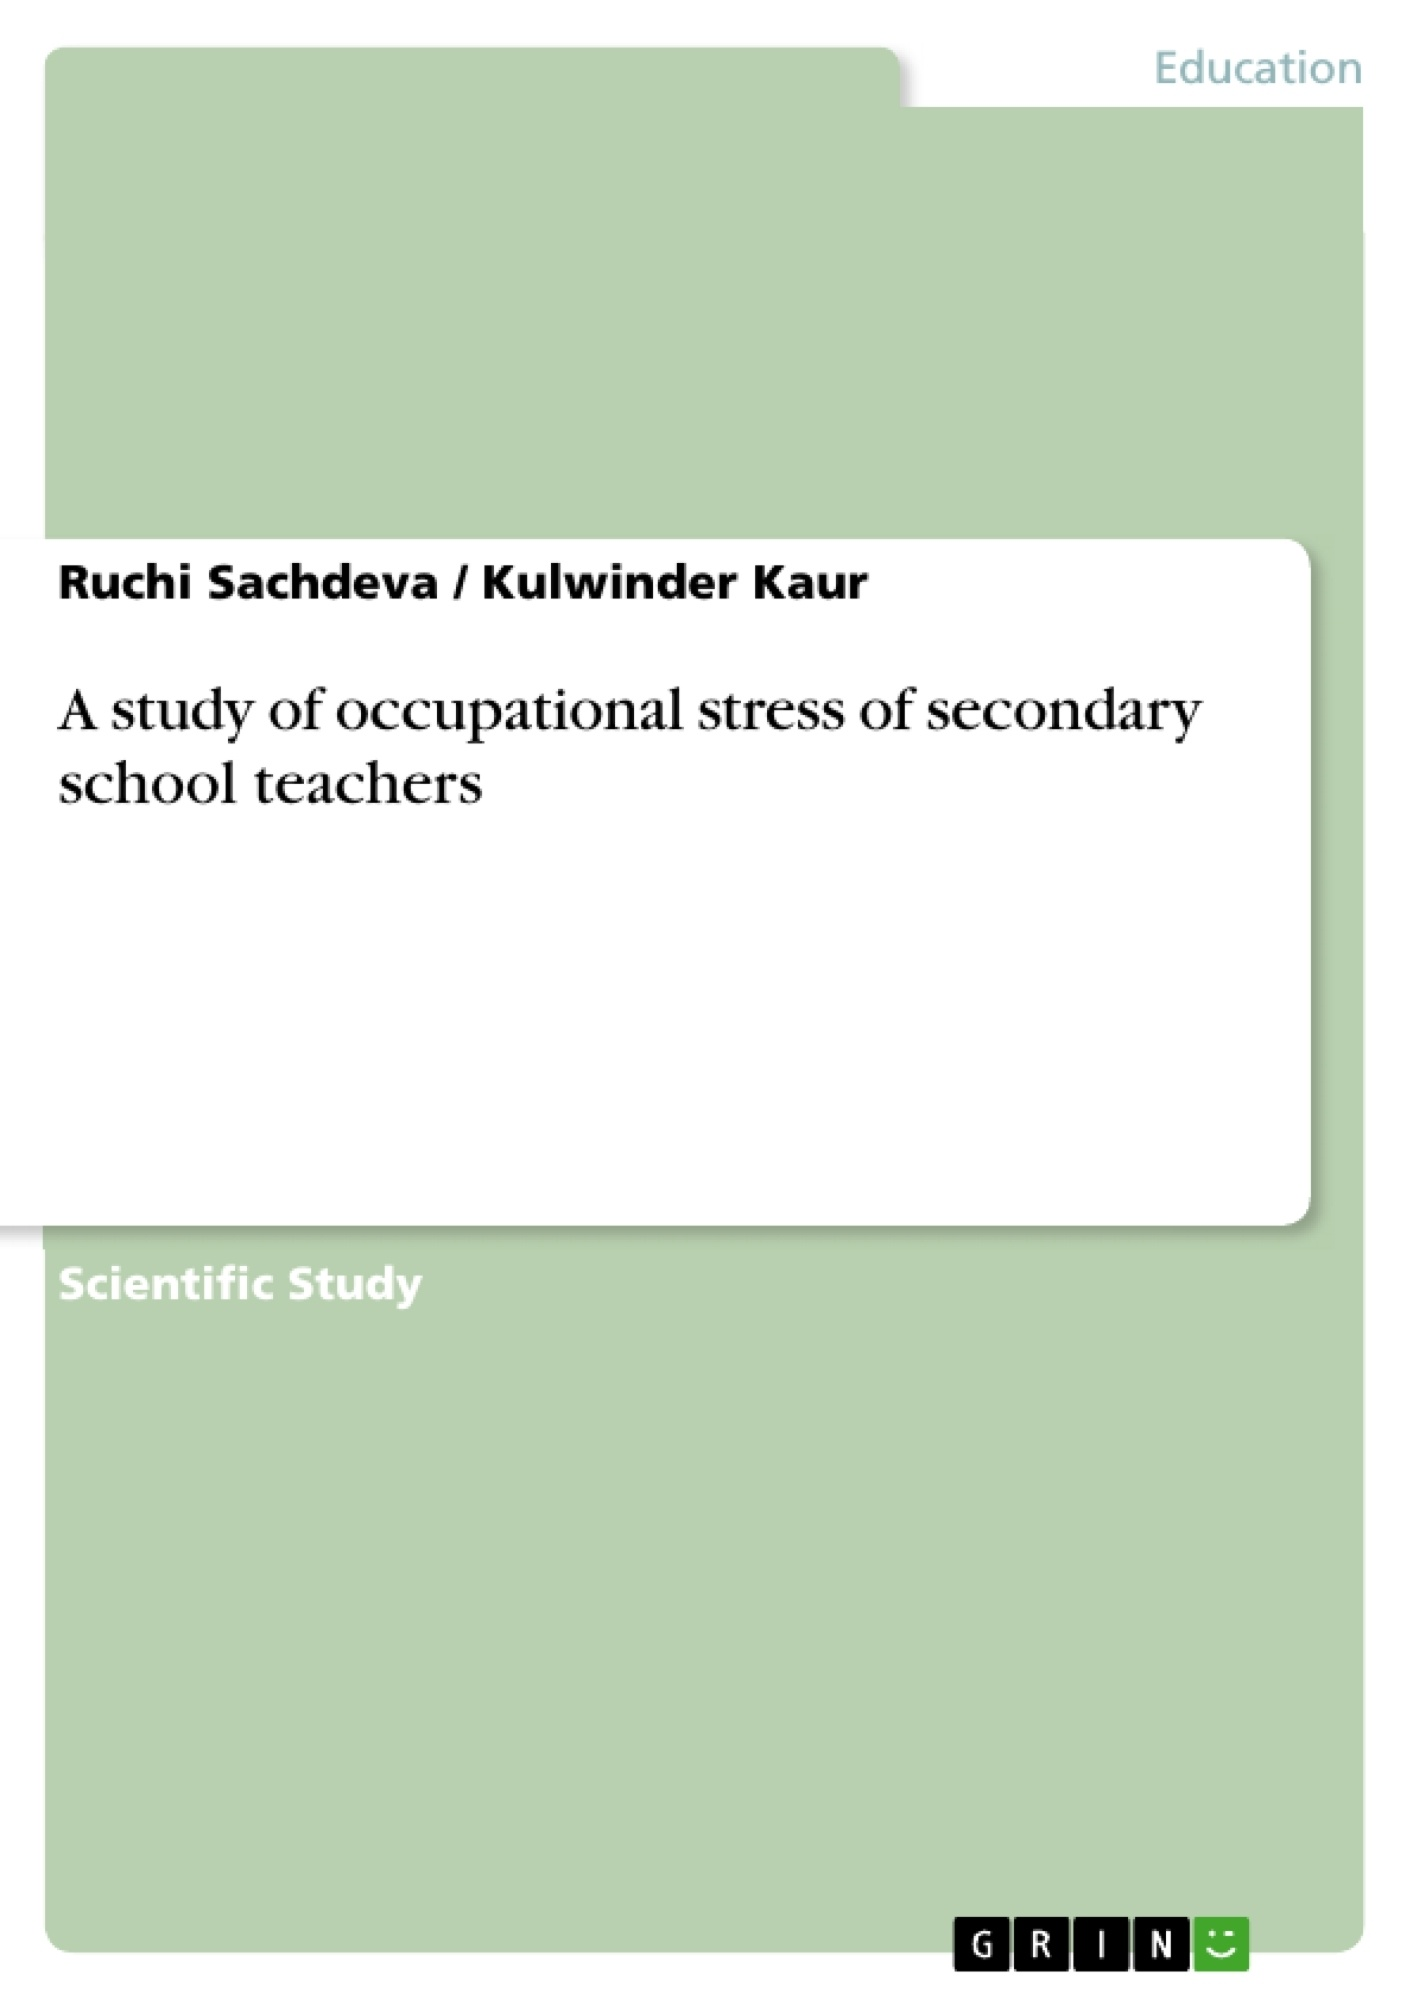 Title: A study of occupational stress of secondary school teachers